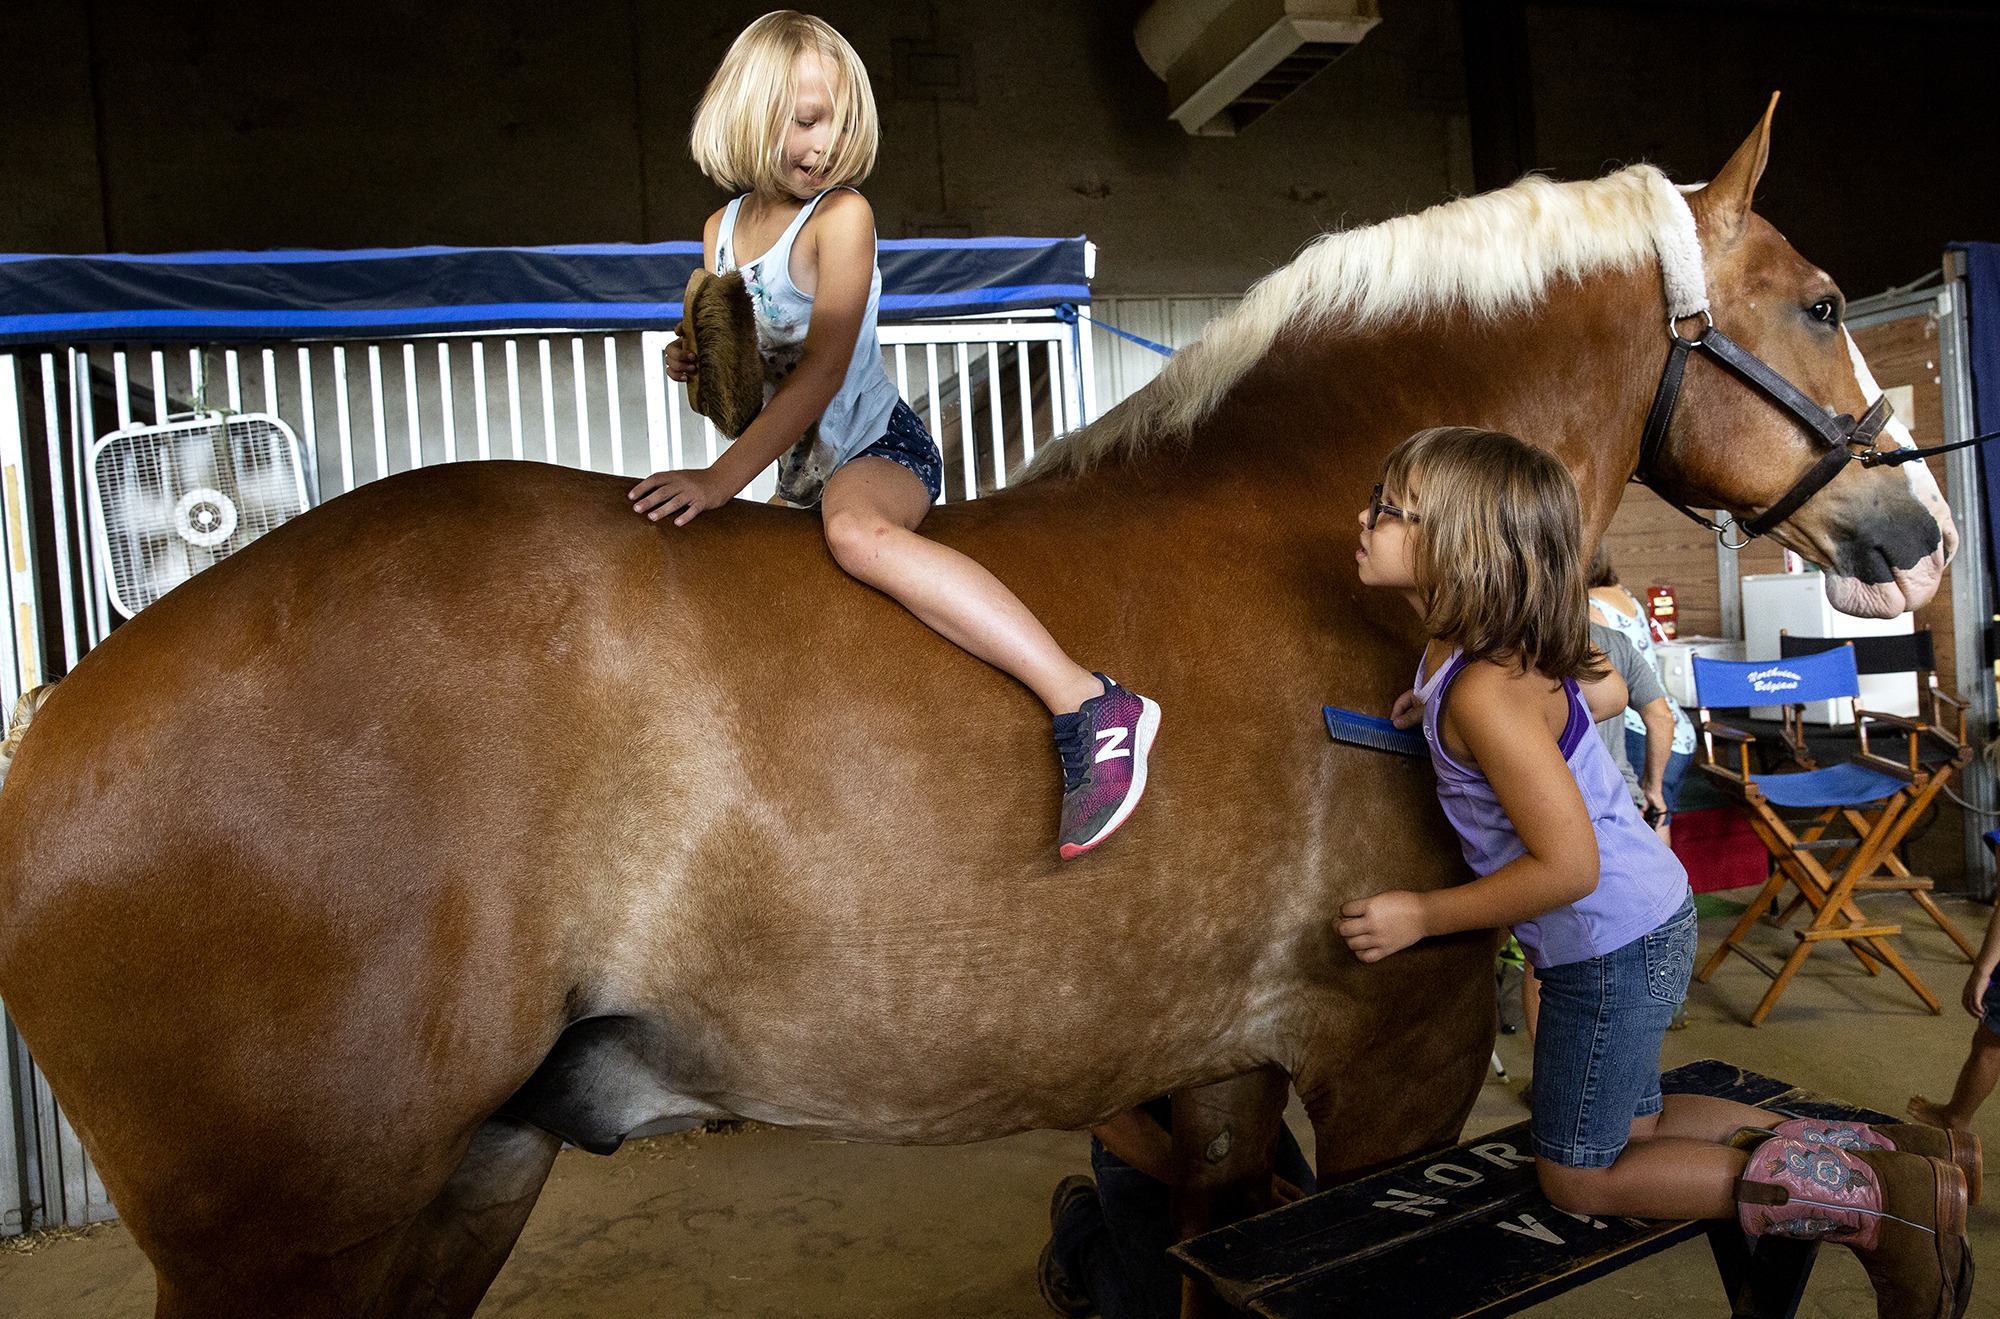 Ava Mrozinski, 8, and her sister, Olivia, 7, groom the family's Belgian horse, Bob, for the draft horse youth cart class at the the Illinois State Fair Tuesday, Aug. 14, 2018 on the state fairgrounds in Springfield, Ill. The Mrozinskis are from LaPorte, Ind. (Rich Saal/The State Journal-Register via AP)